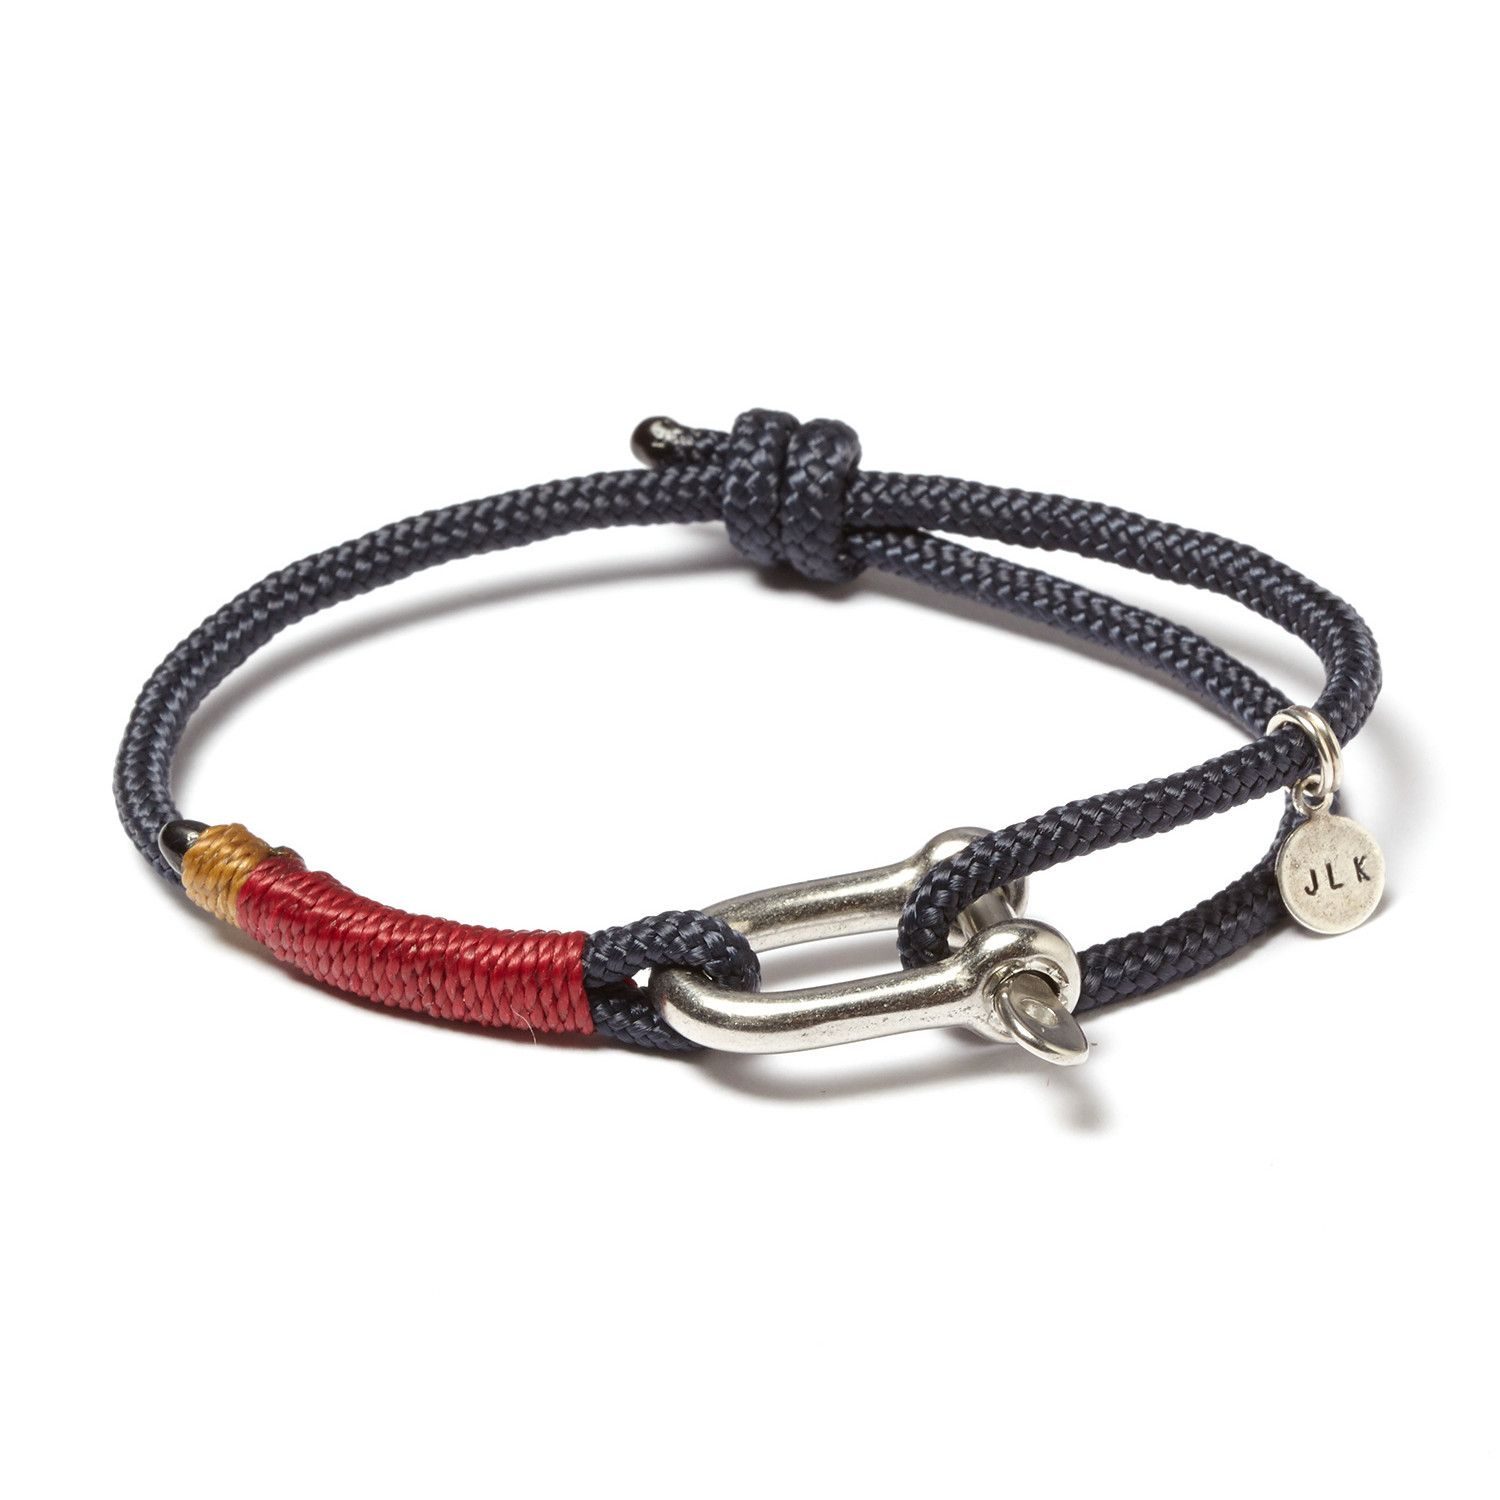 Navy + Burgundy, Stainless Steel D-Shackle Adjustable Cuff combines nautical style with durable detailing. Handmade to order in Annapolis, Maryland, this bracelet combines a stainless captive pin D-shackle, sailing line, and whipping twine   $29.99.